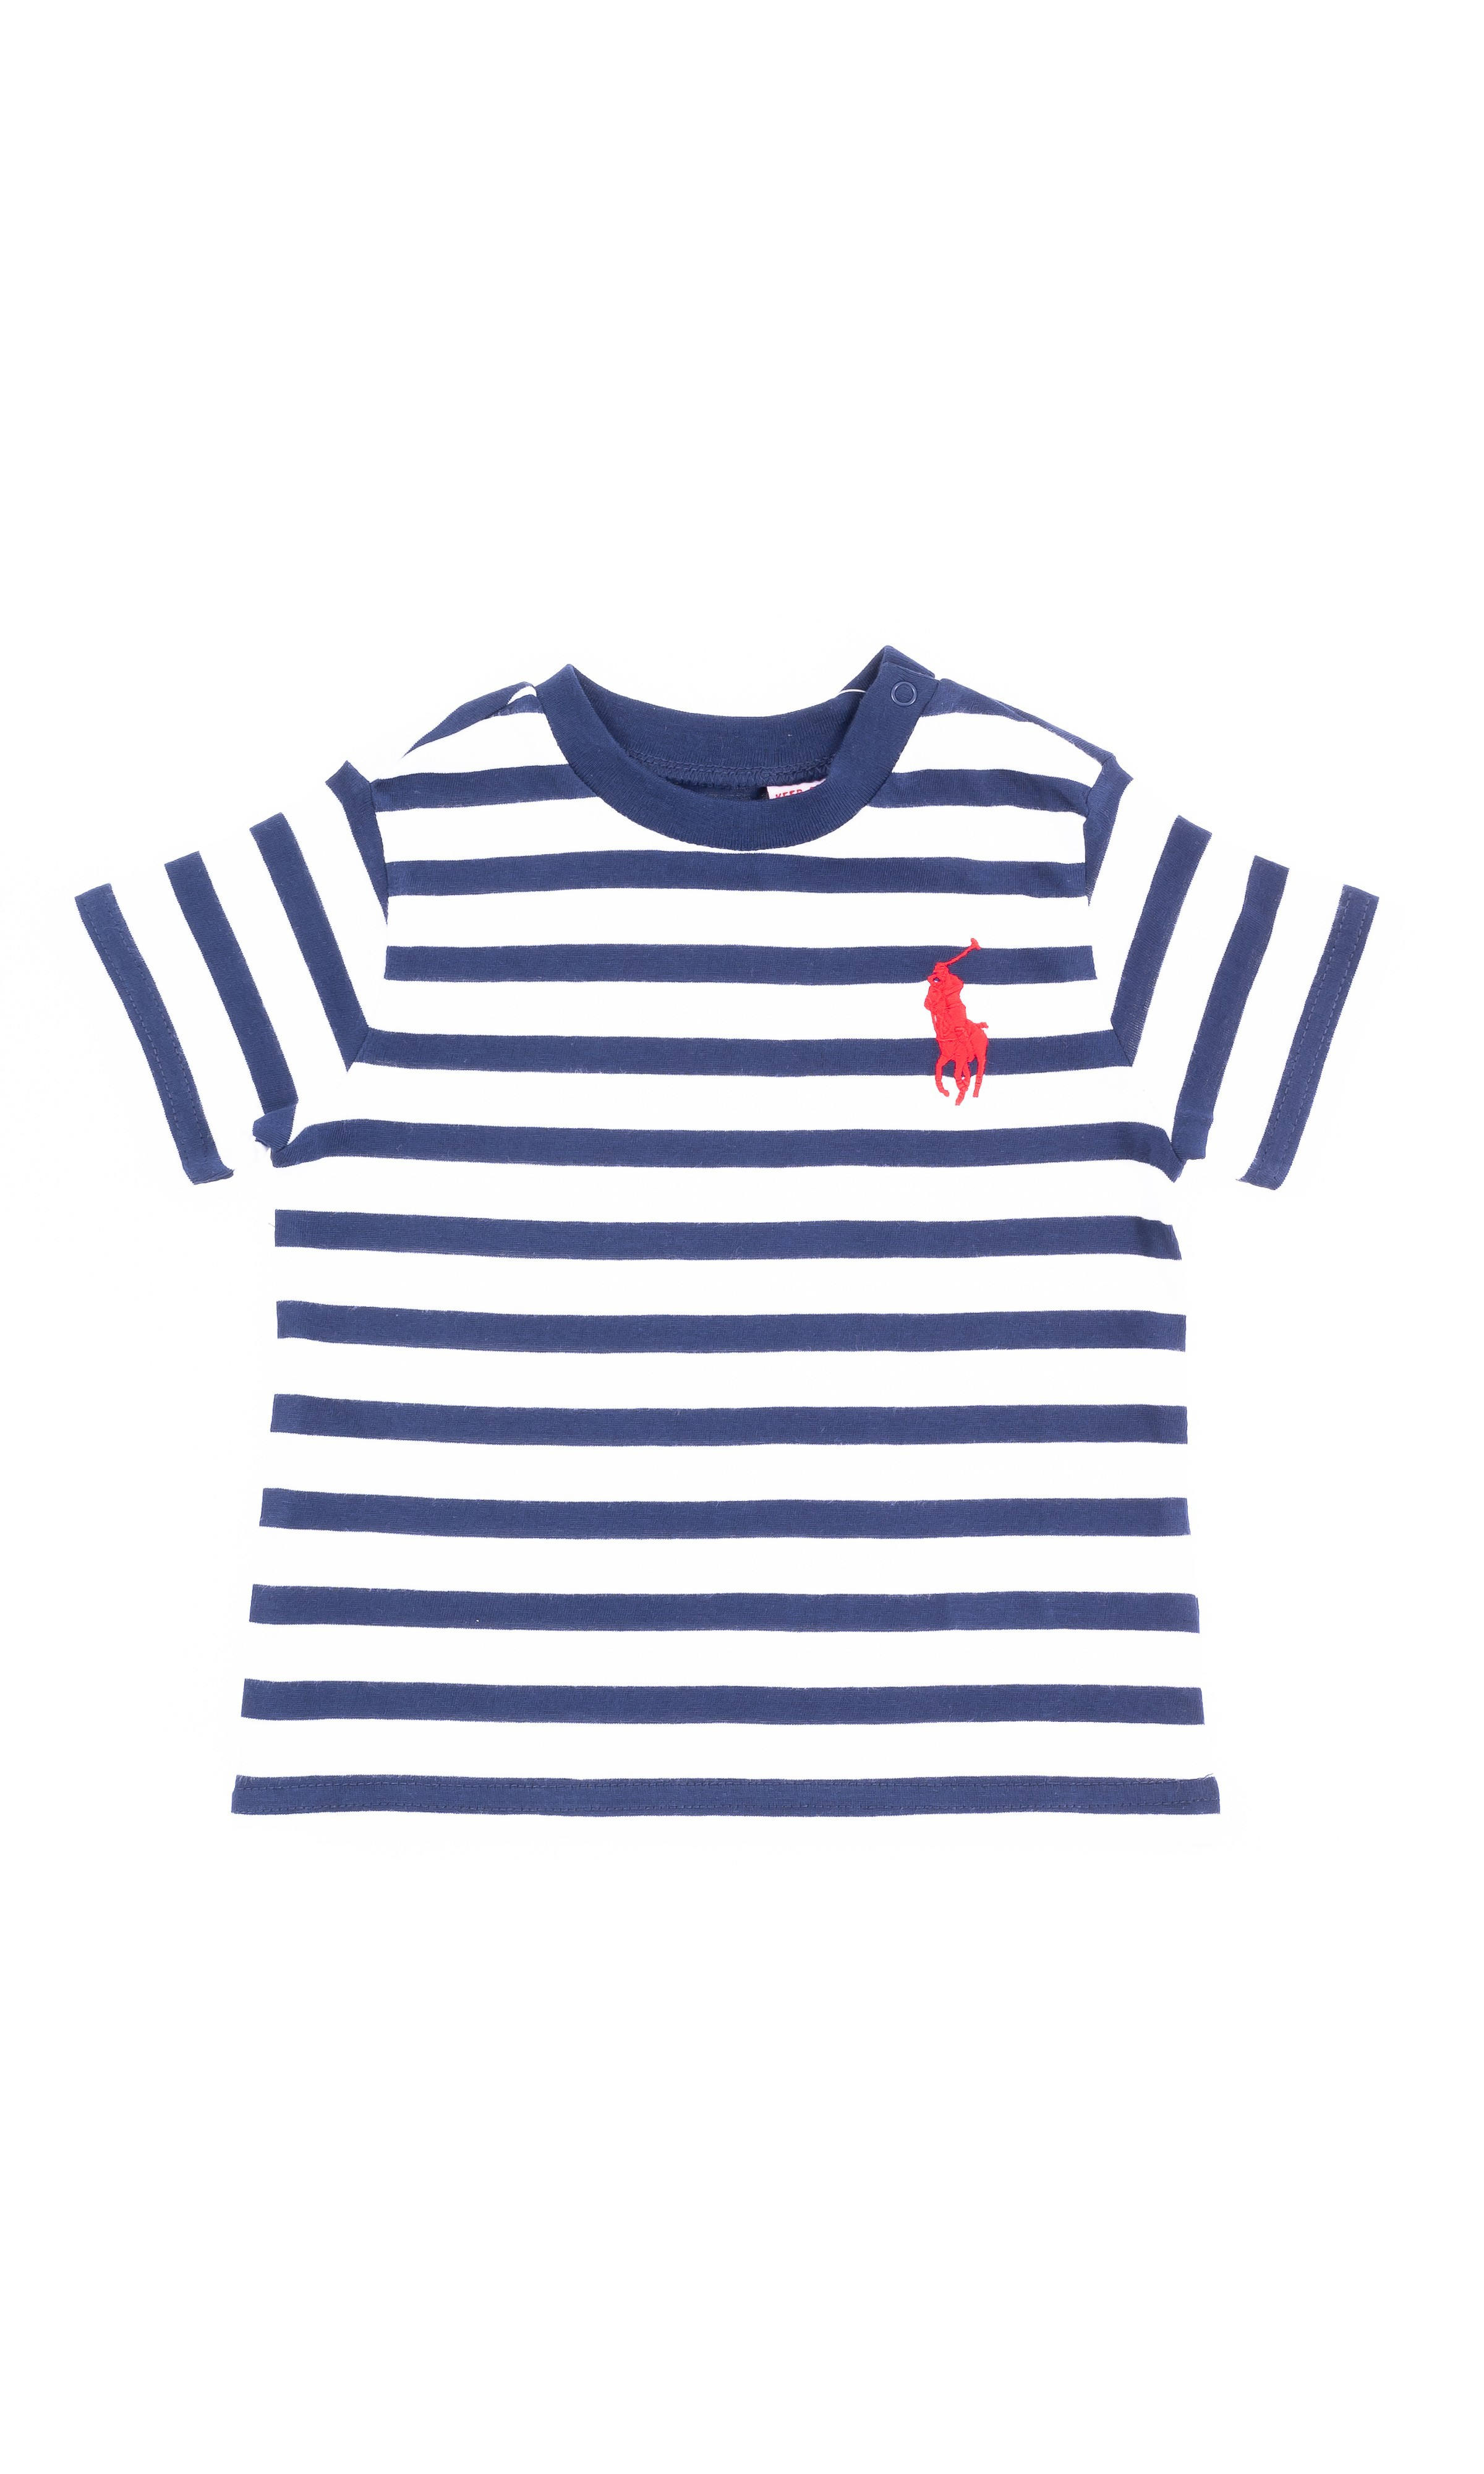 728ceff530bc Boys T-shirt in white and navy stripes, Polo Ralph Lauren ...